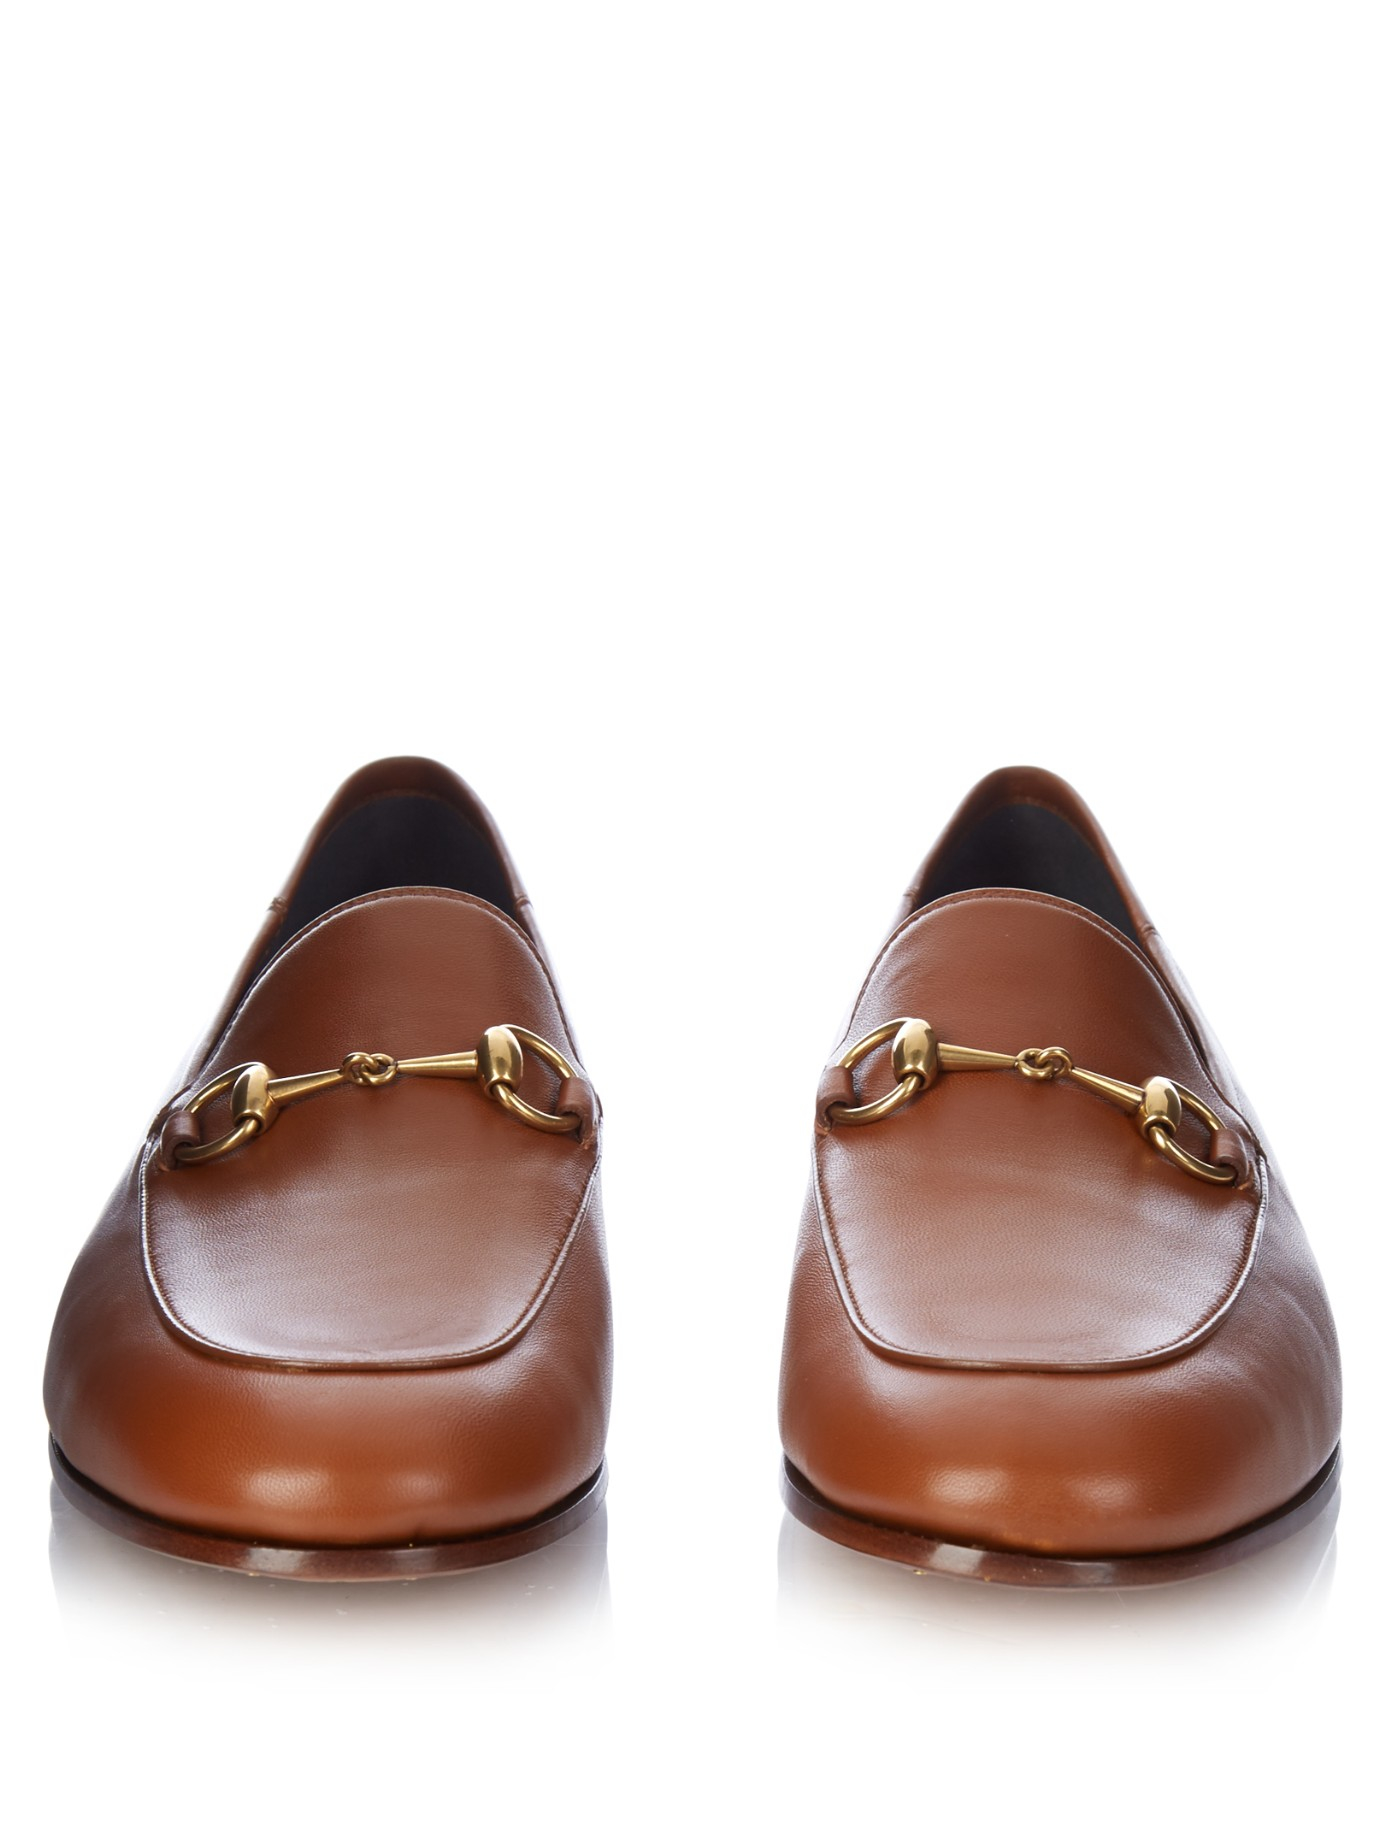 aadbf413a31 Lyst - Gucci Brixton Leather Loafers in Brown for Men